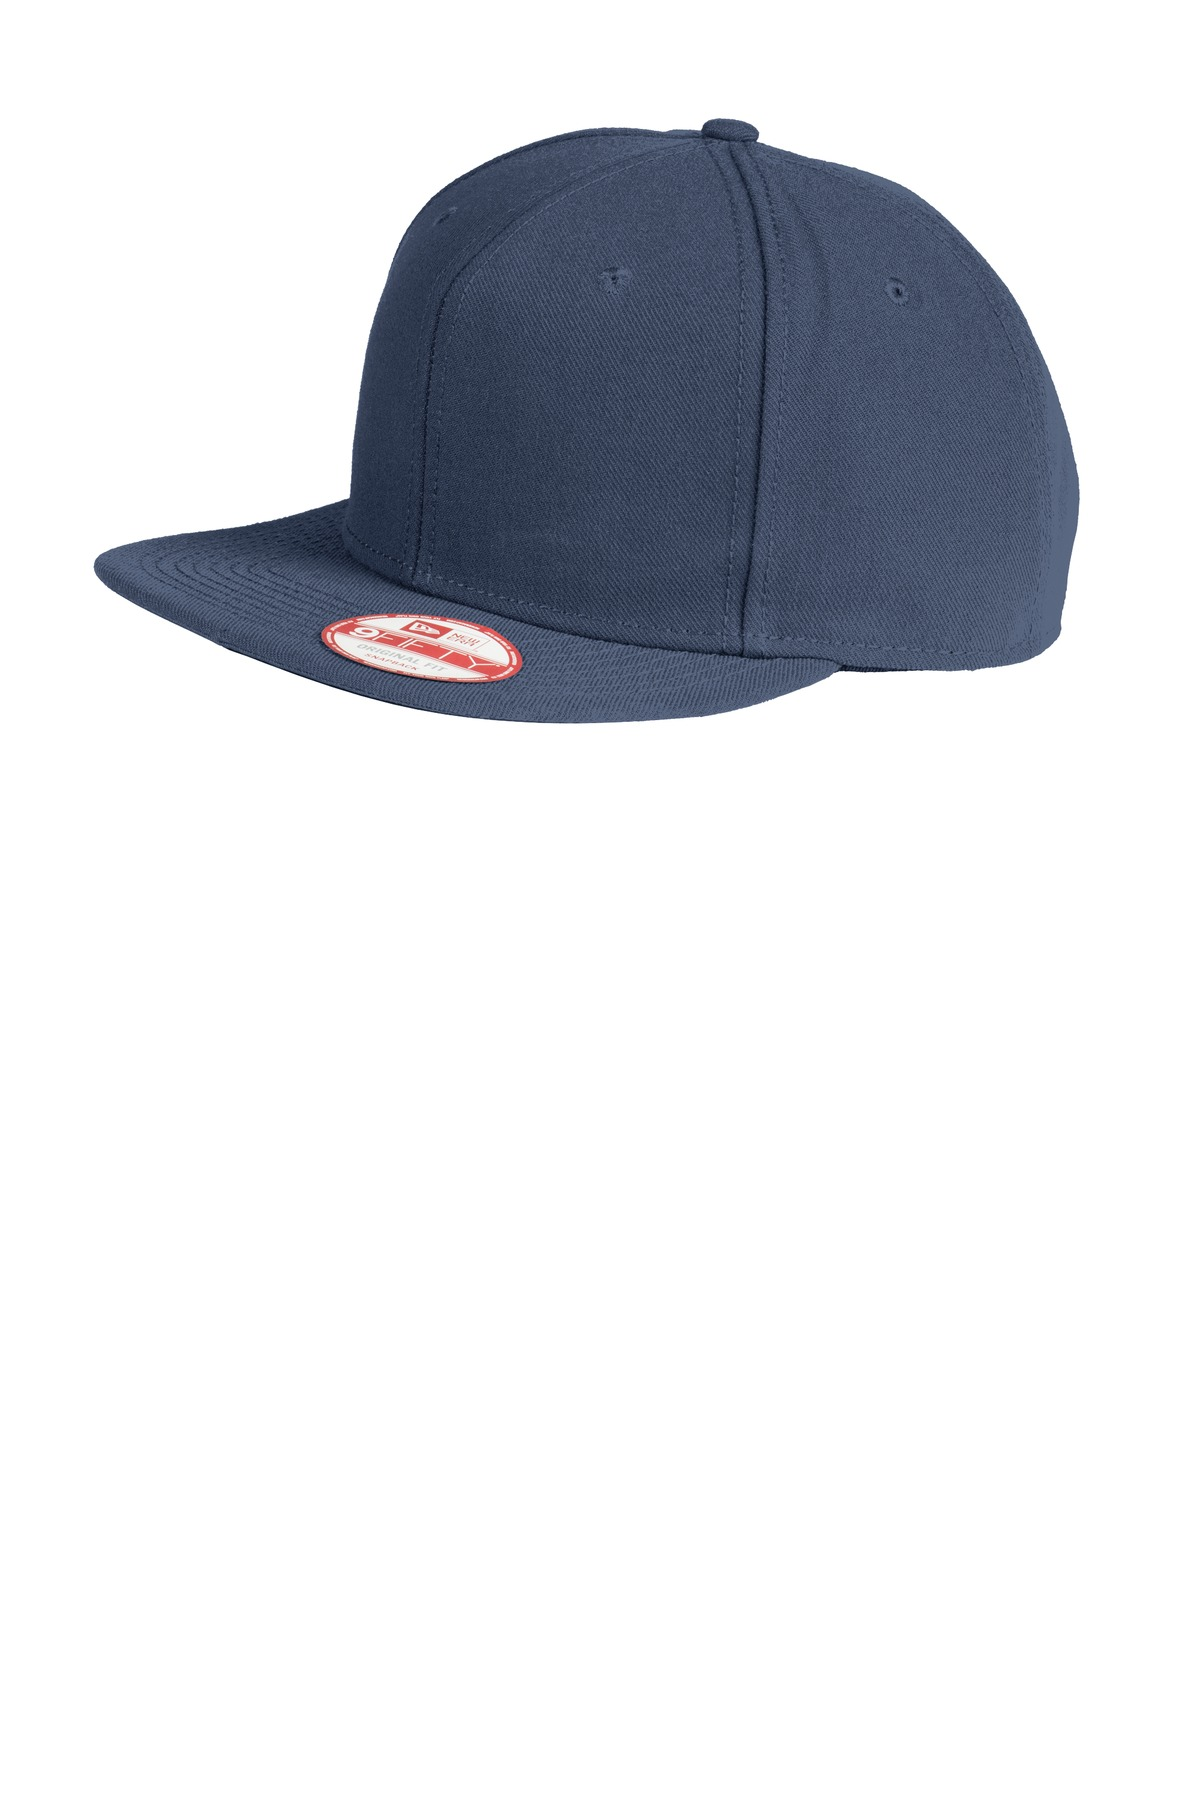 New Era ®  Original Fit Flat Bill Snapback Cap. NE402 - League Navy